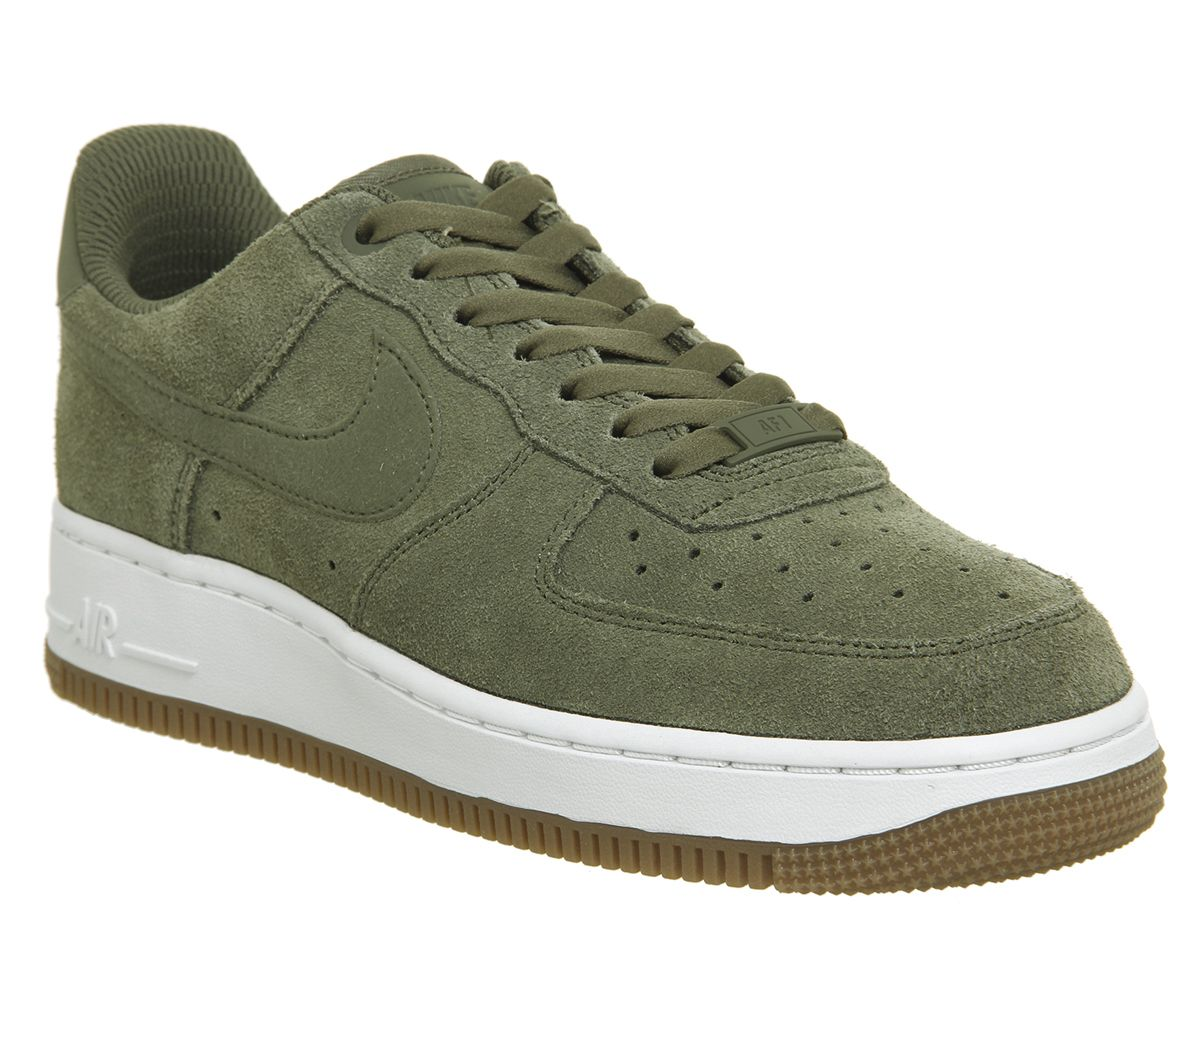 promo code 08417 8ee63 Nike, Air Force 1 07 Trainers, Medium Olive White Gum